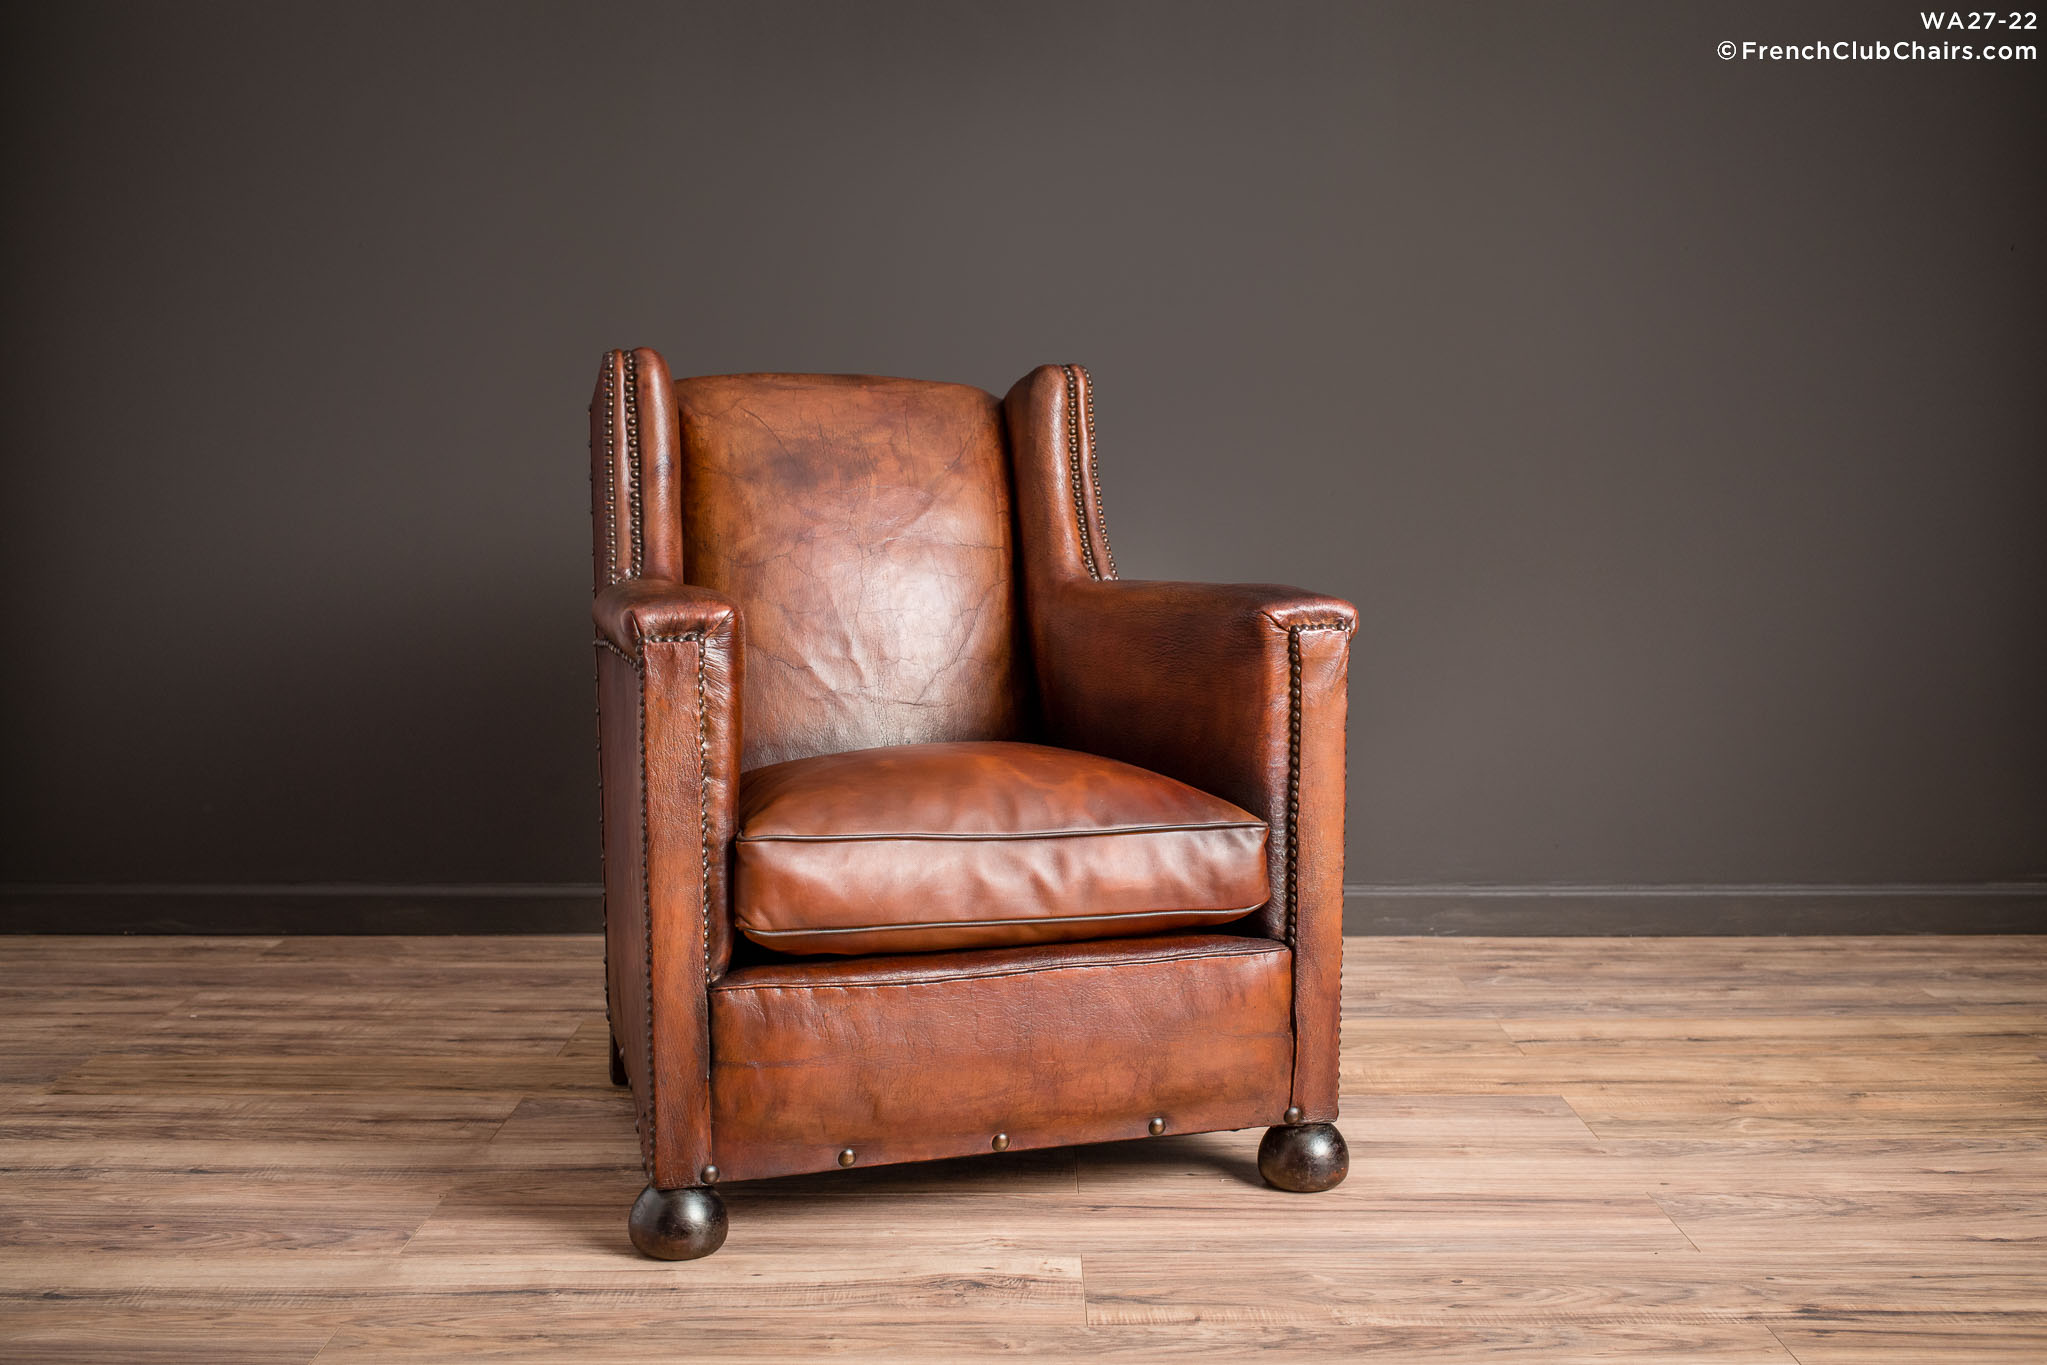 WA_27-22_Monthlery_Wingback_Solo_R_1TQ-v01-williams-antiks-leather-french-club-chair-wa_fcccom